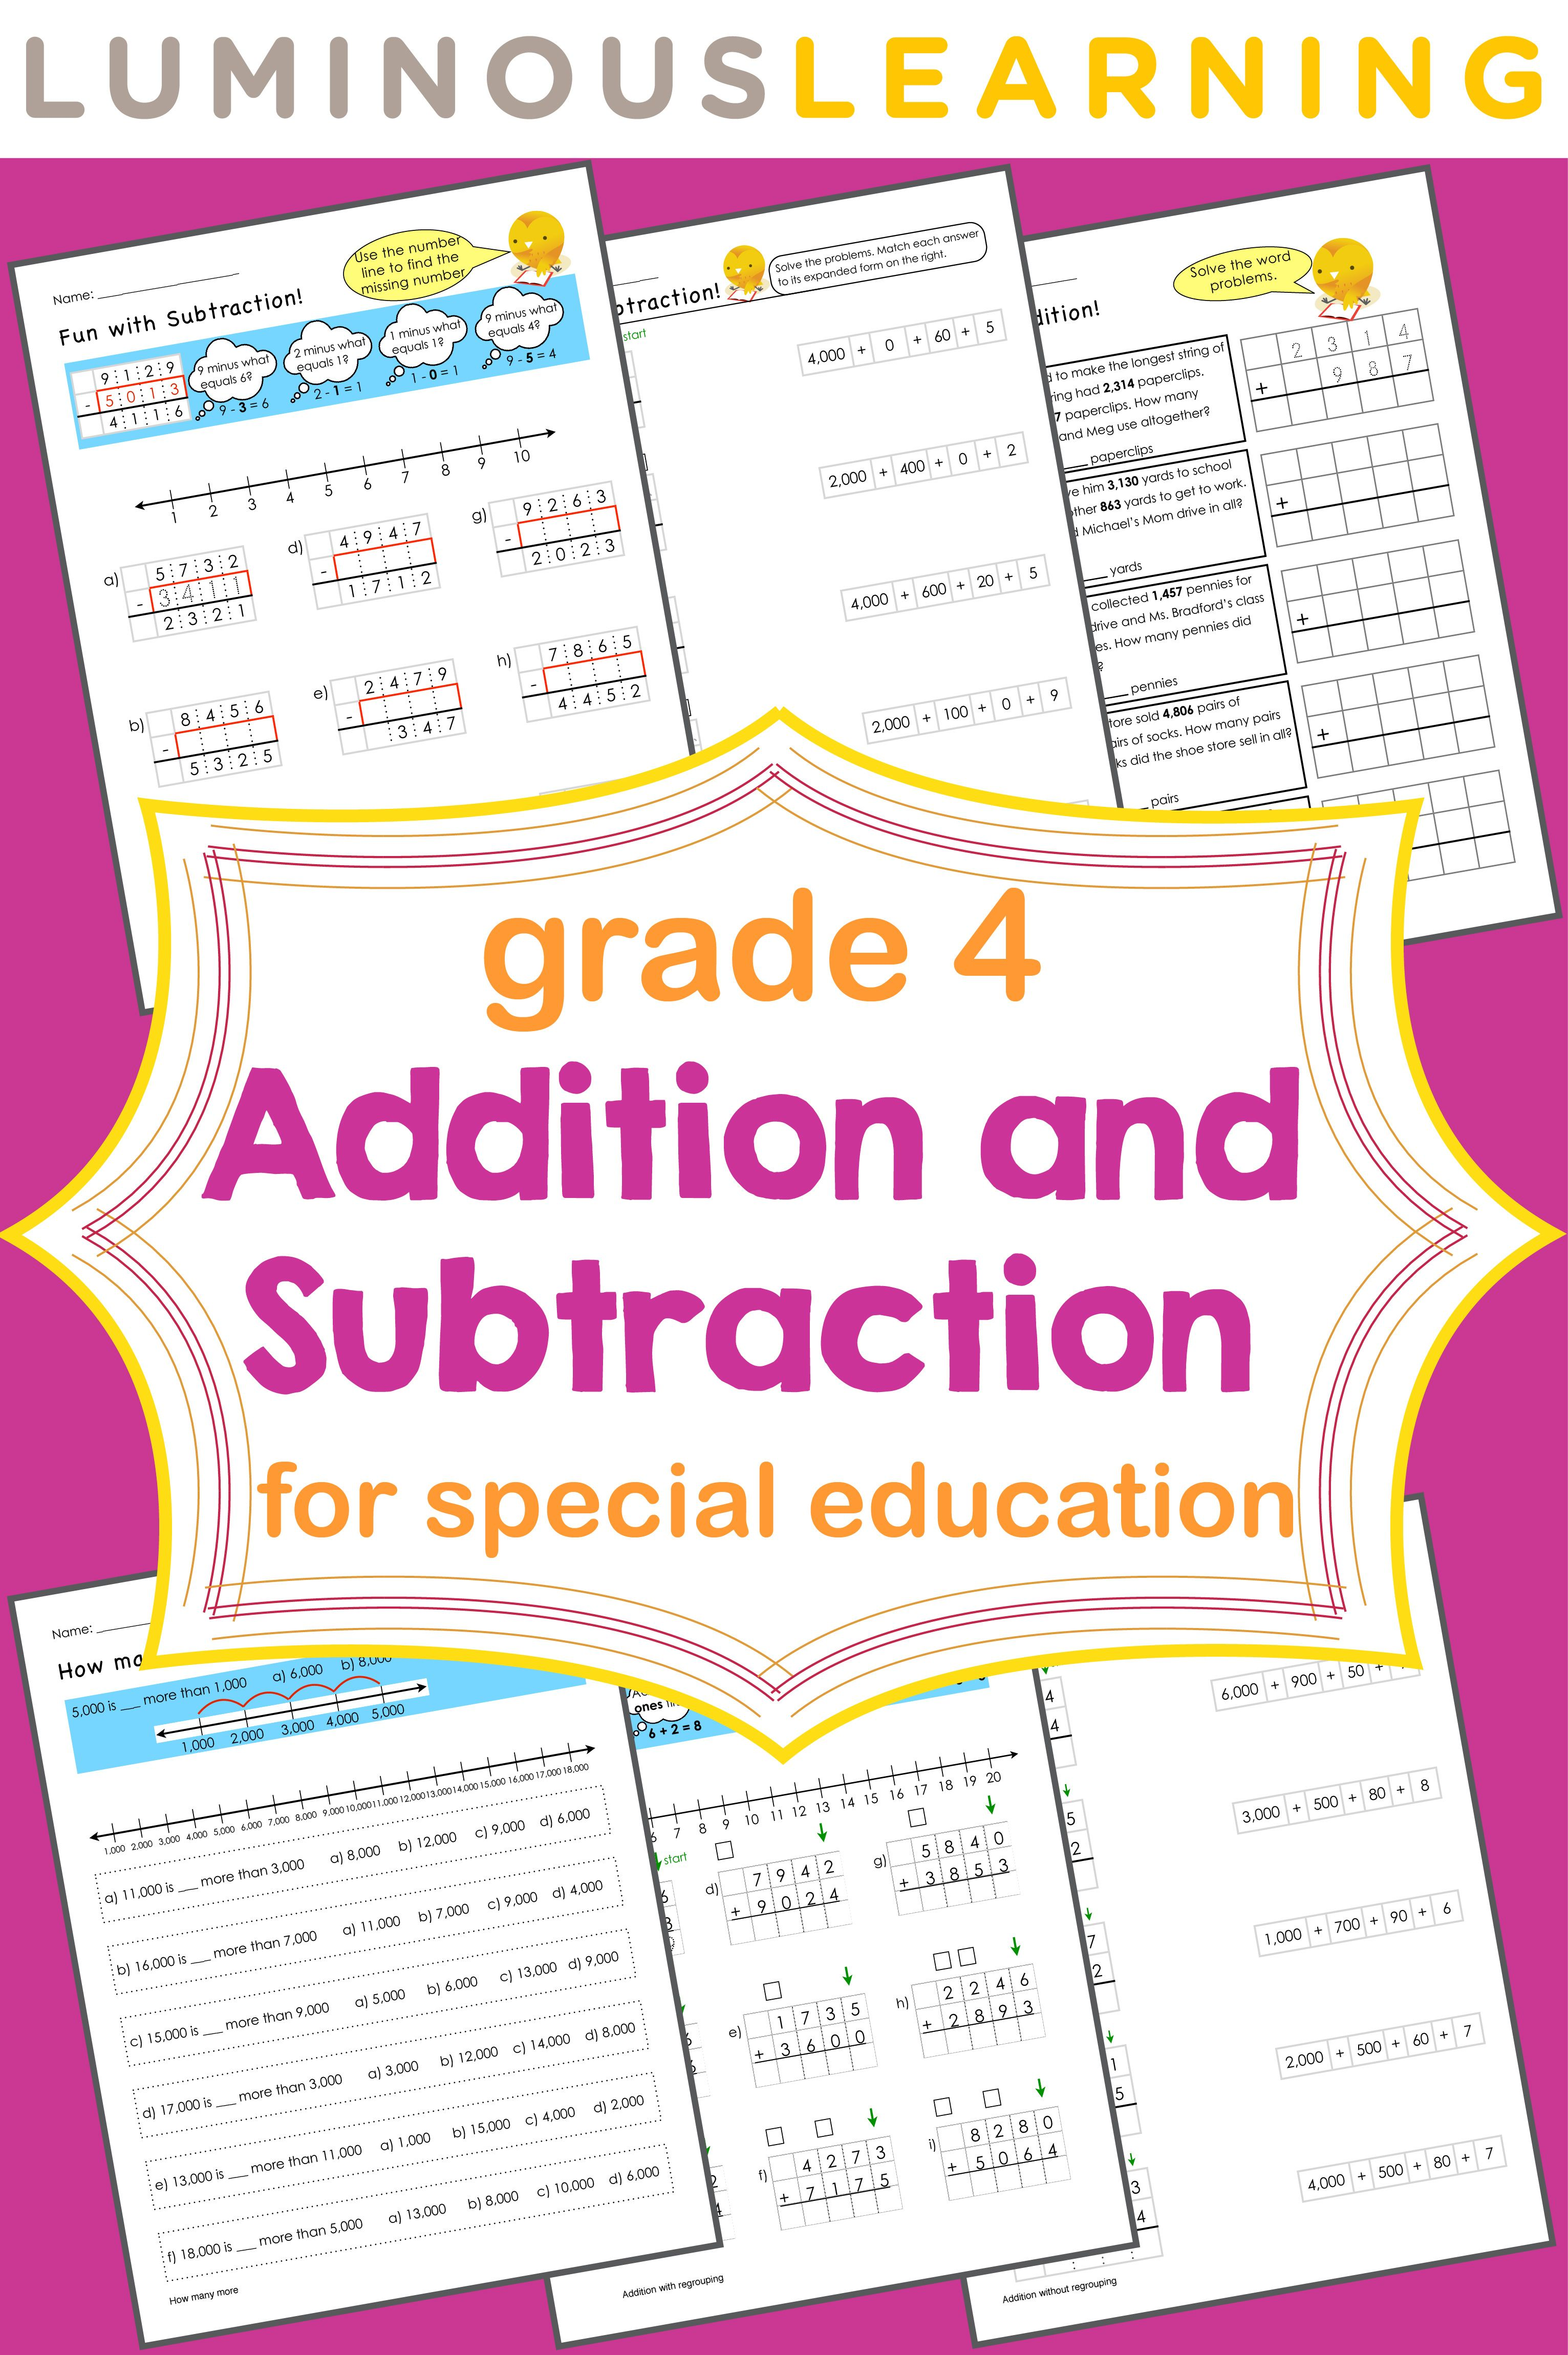 Luminous Learning Grade 4 Addition And Subtraction